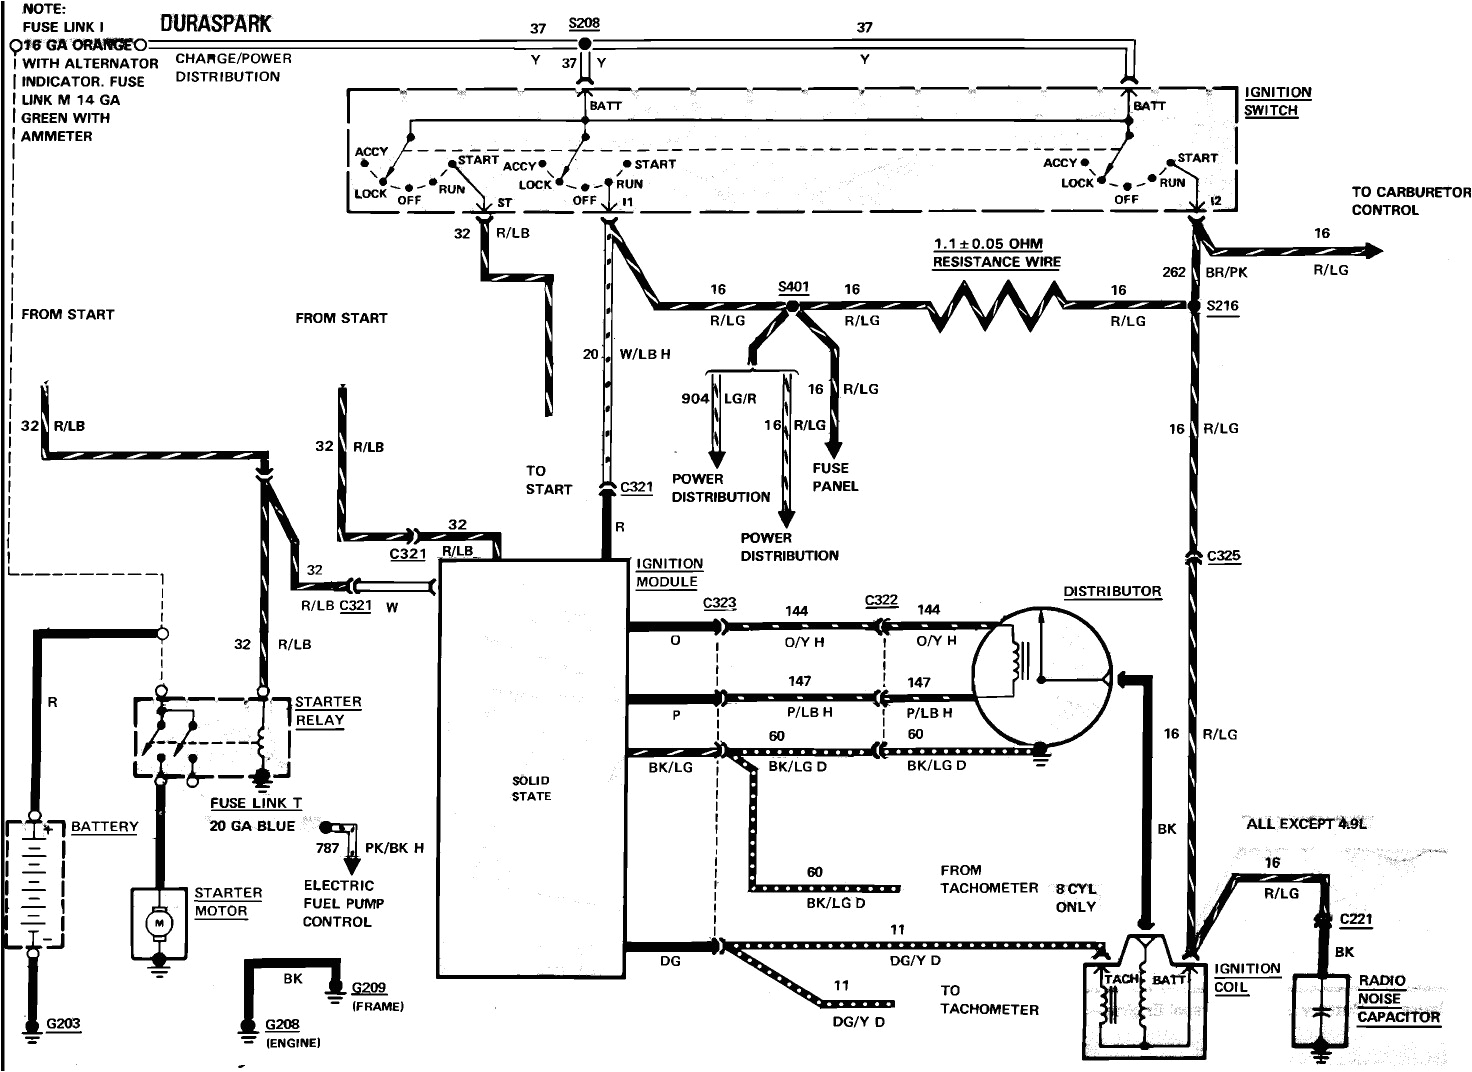 Ford F250 Wiring Diagram Online ford F250 Wiring Diagram Online Free Wiring Diagram